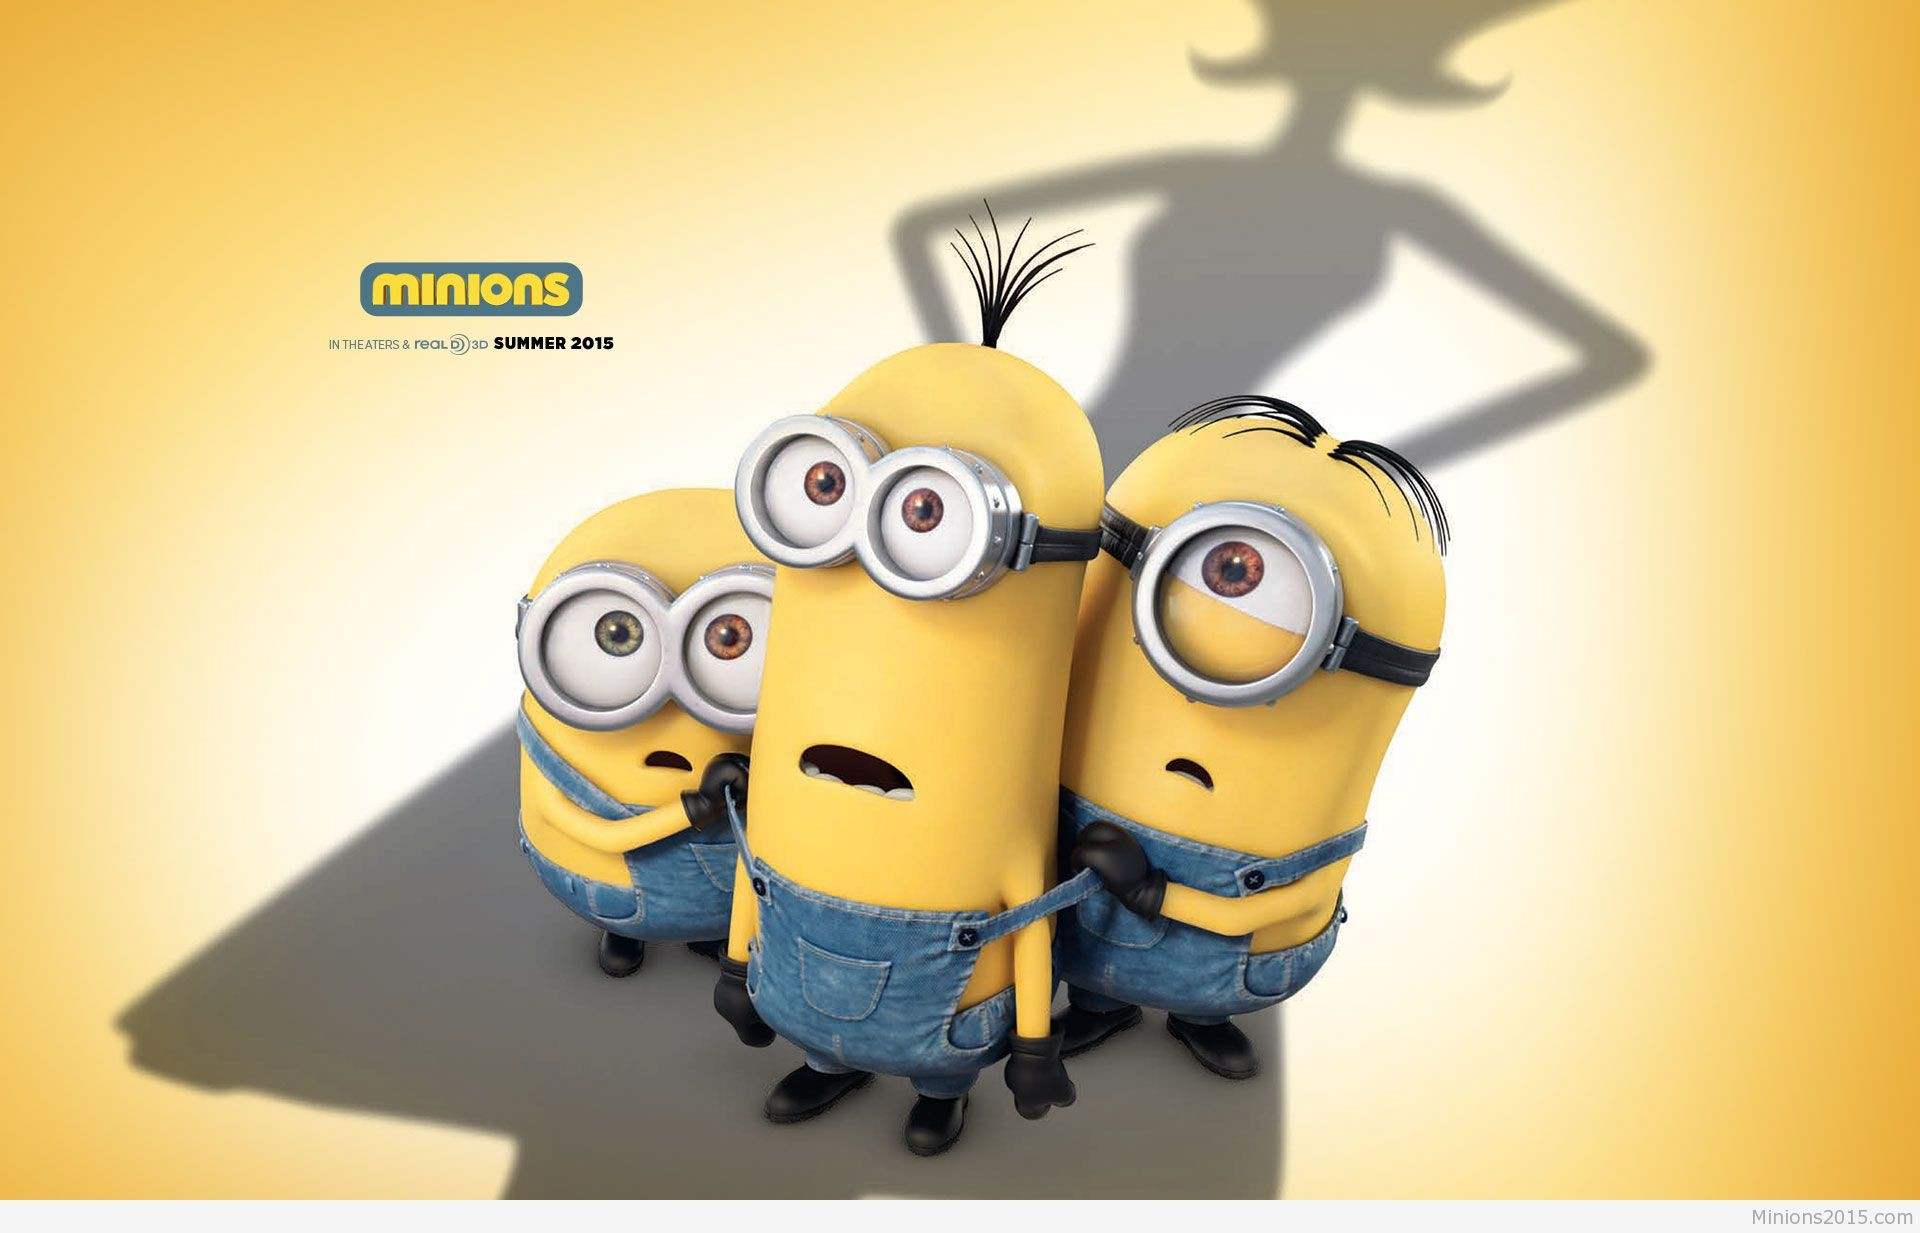 1920x1233 minions-movie-2015-desktop-backgrounds-iphone-wallpapers-hd